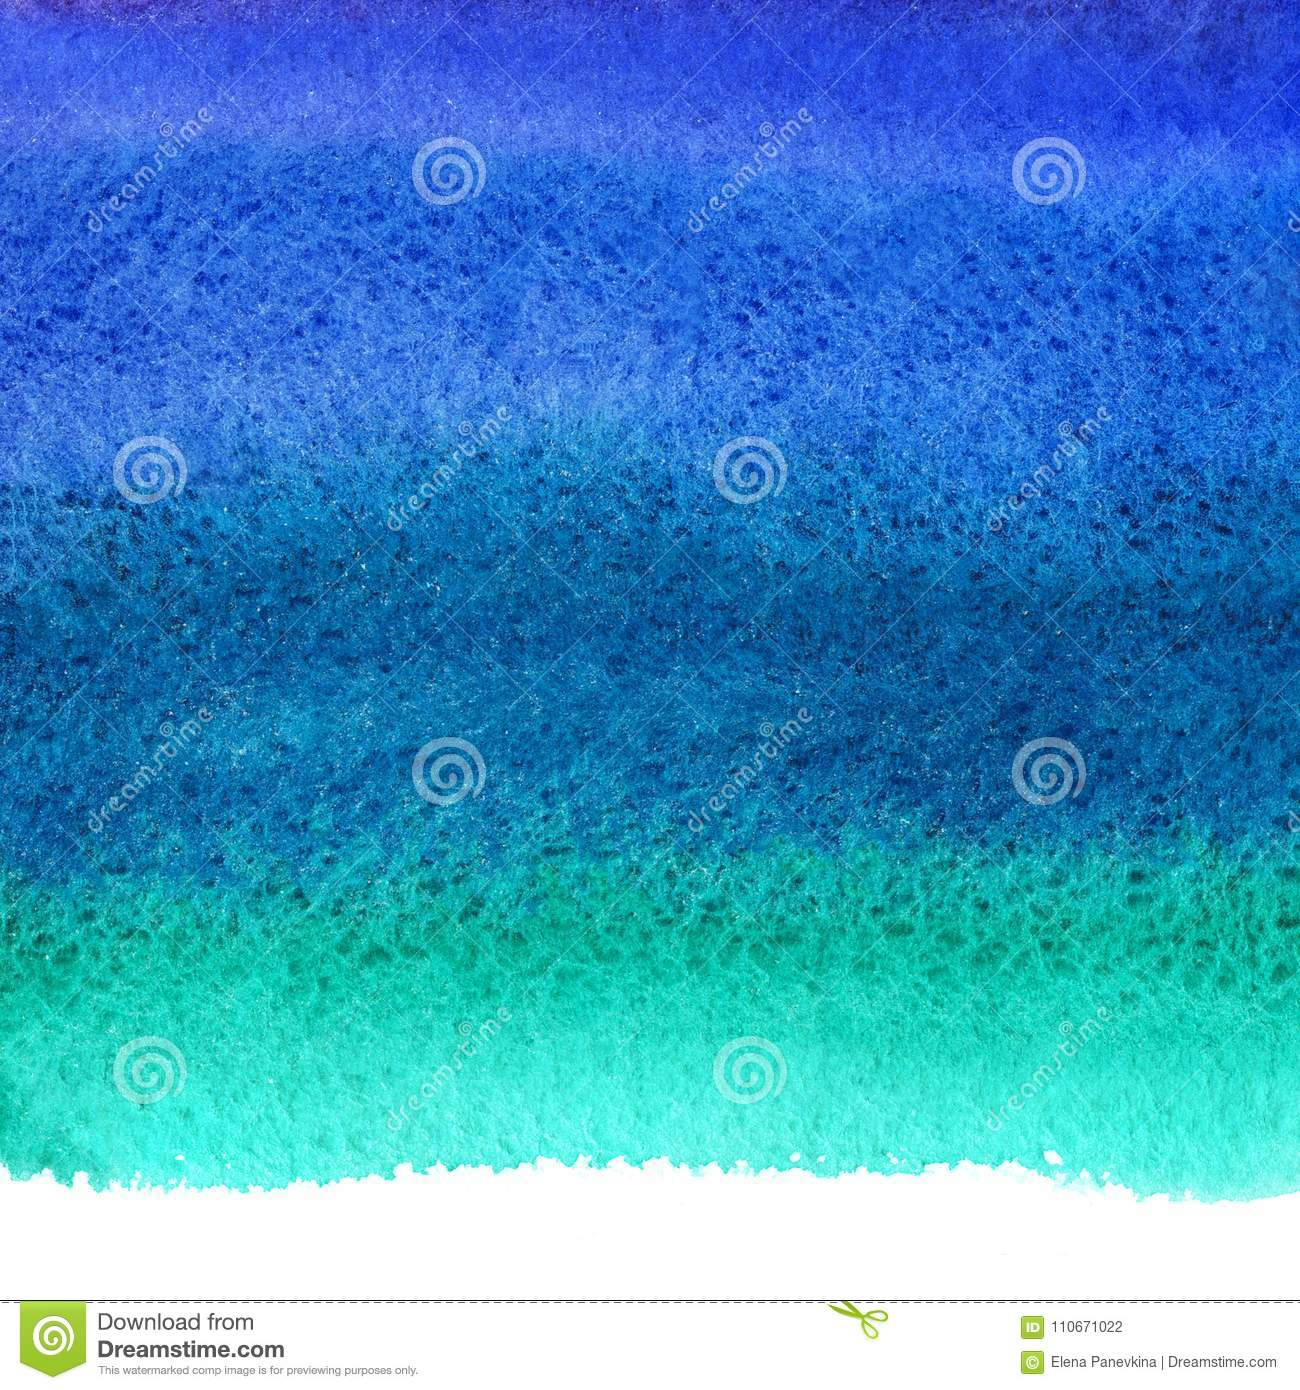 Navy blue watercolor stains background, uneven edge